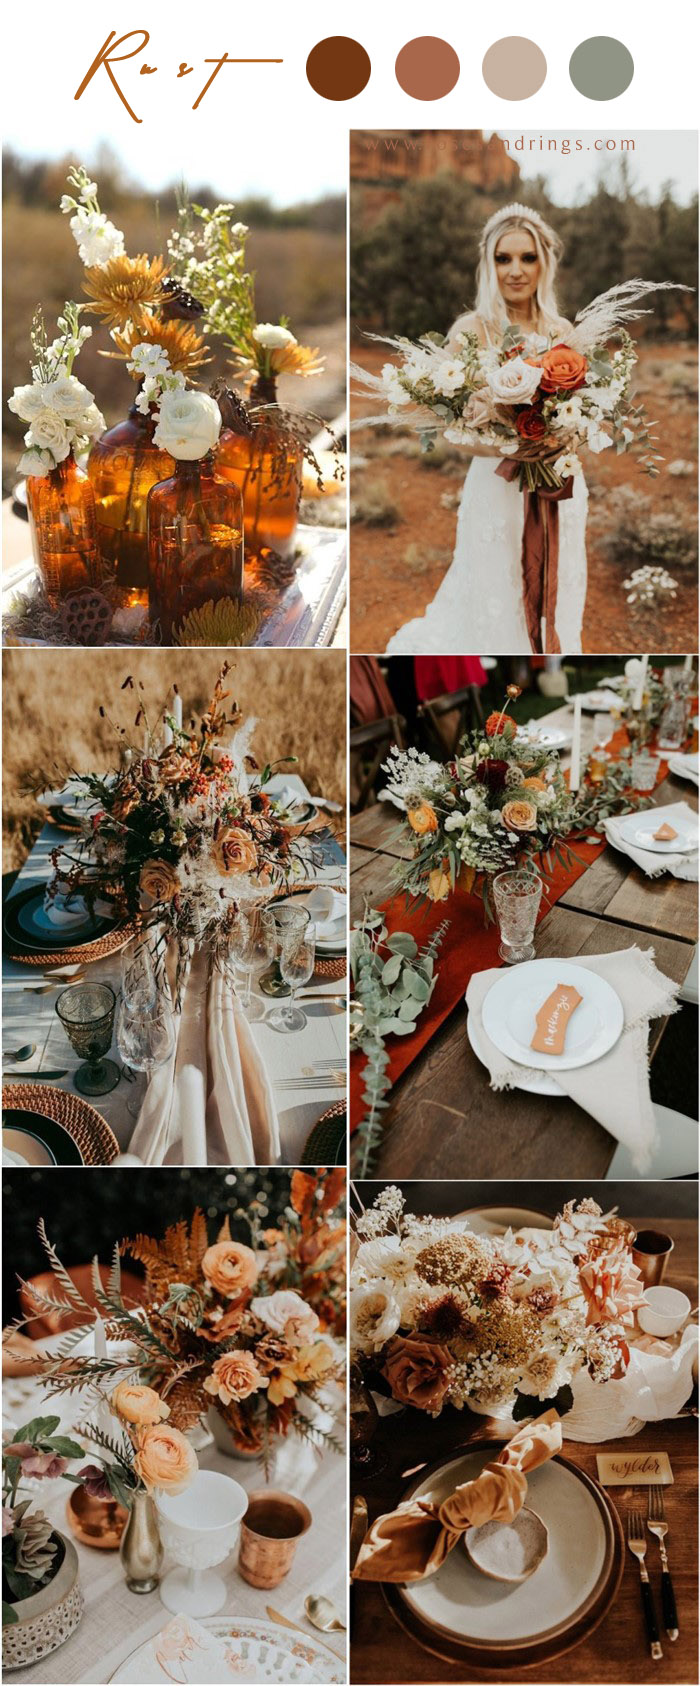 Bohemian rust dusty orange wedding color ideas #rustwedding #fallwedding #weddingcolors #weddingideas #dustyorange